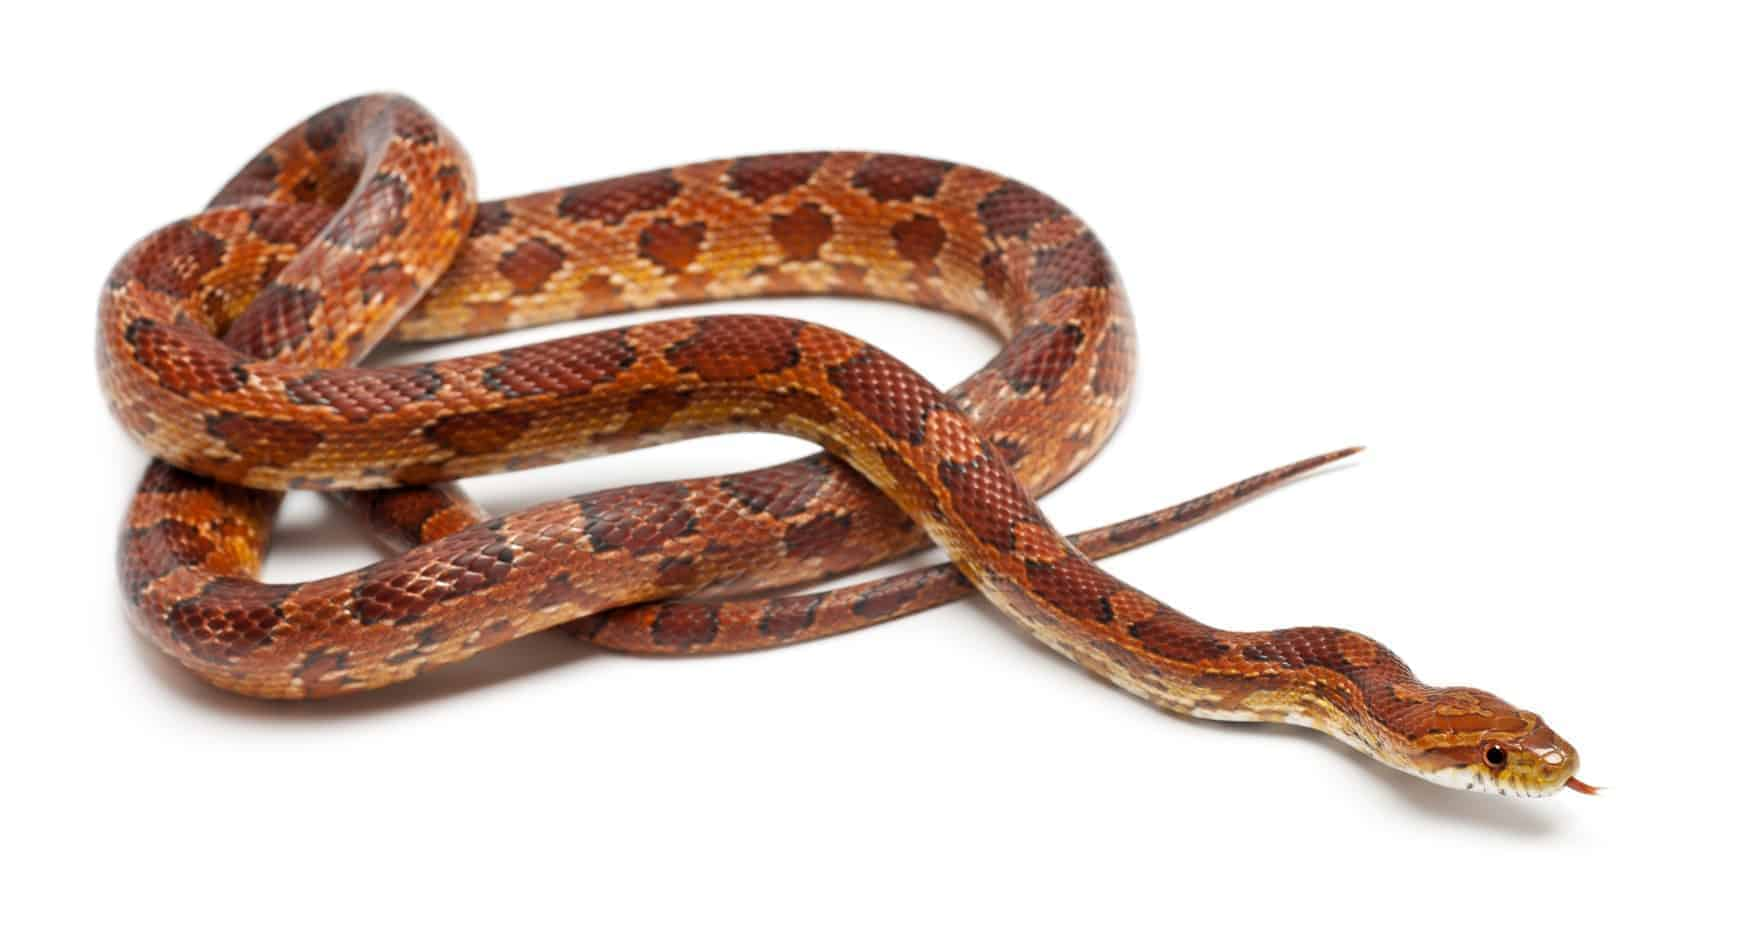 10 Pros and Cons of Having a Corn Snake as a Pet